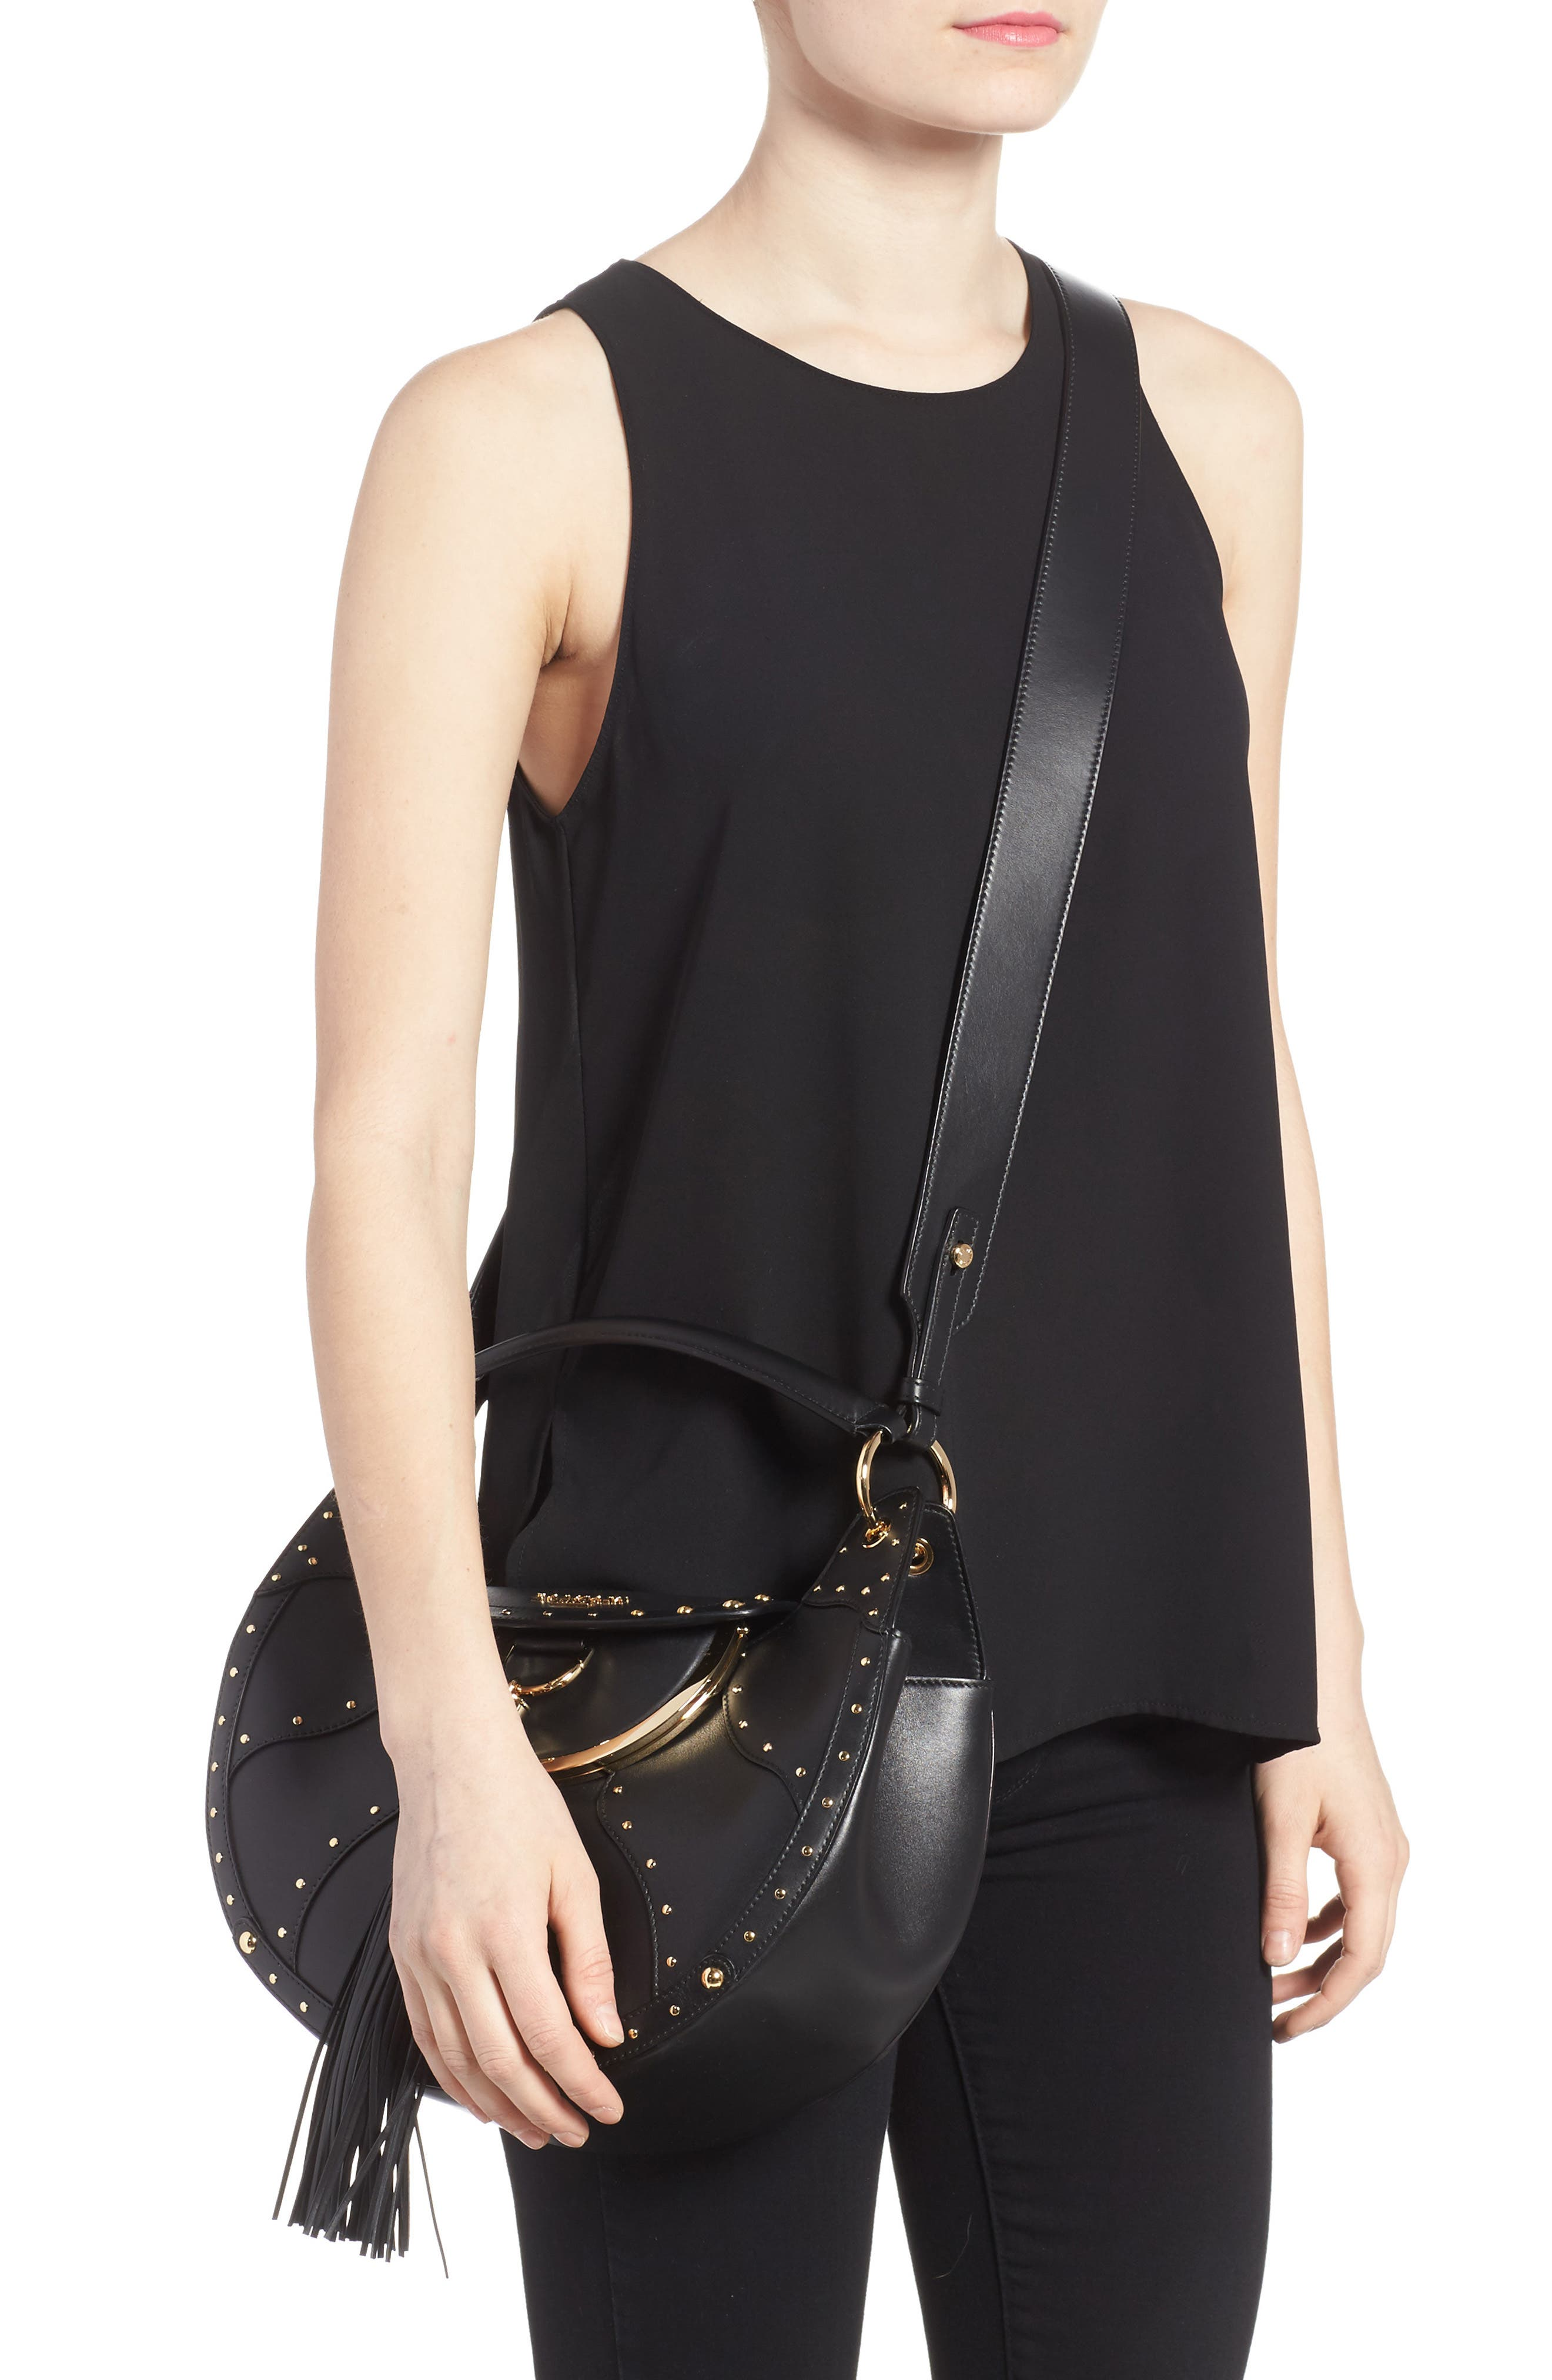 Domaine Full Moon Leather Shoulder Bag,                             Alternate thumbnail 2, color,                             001